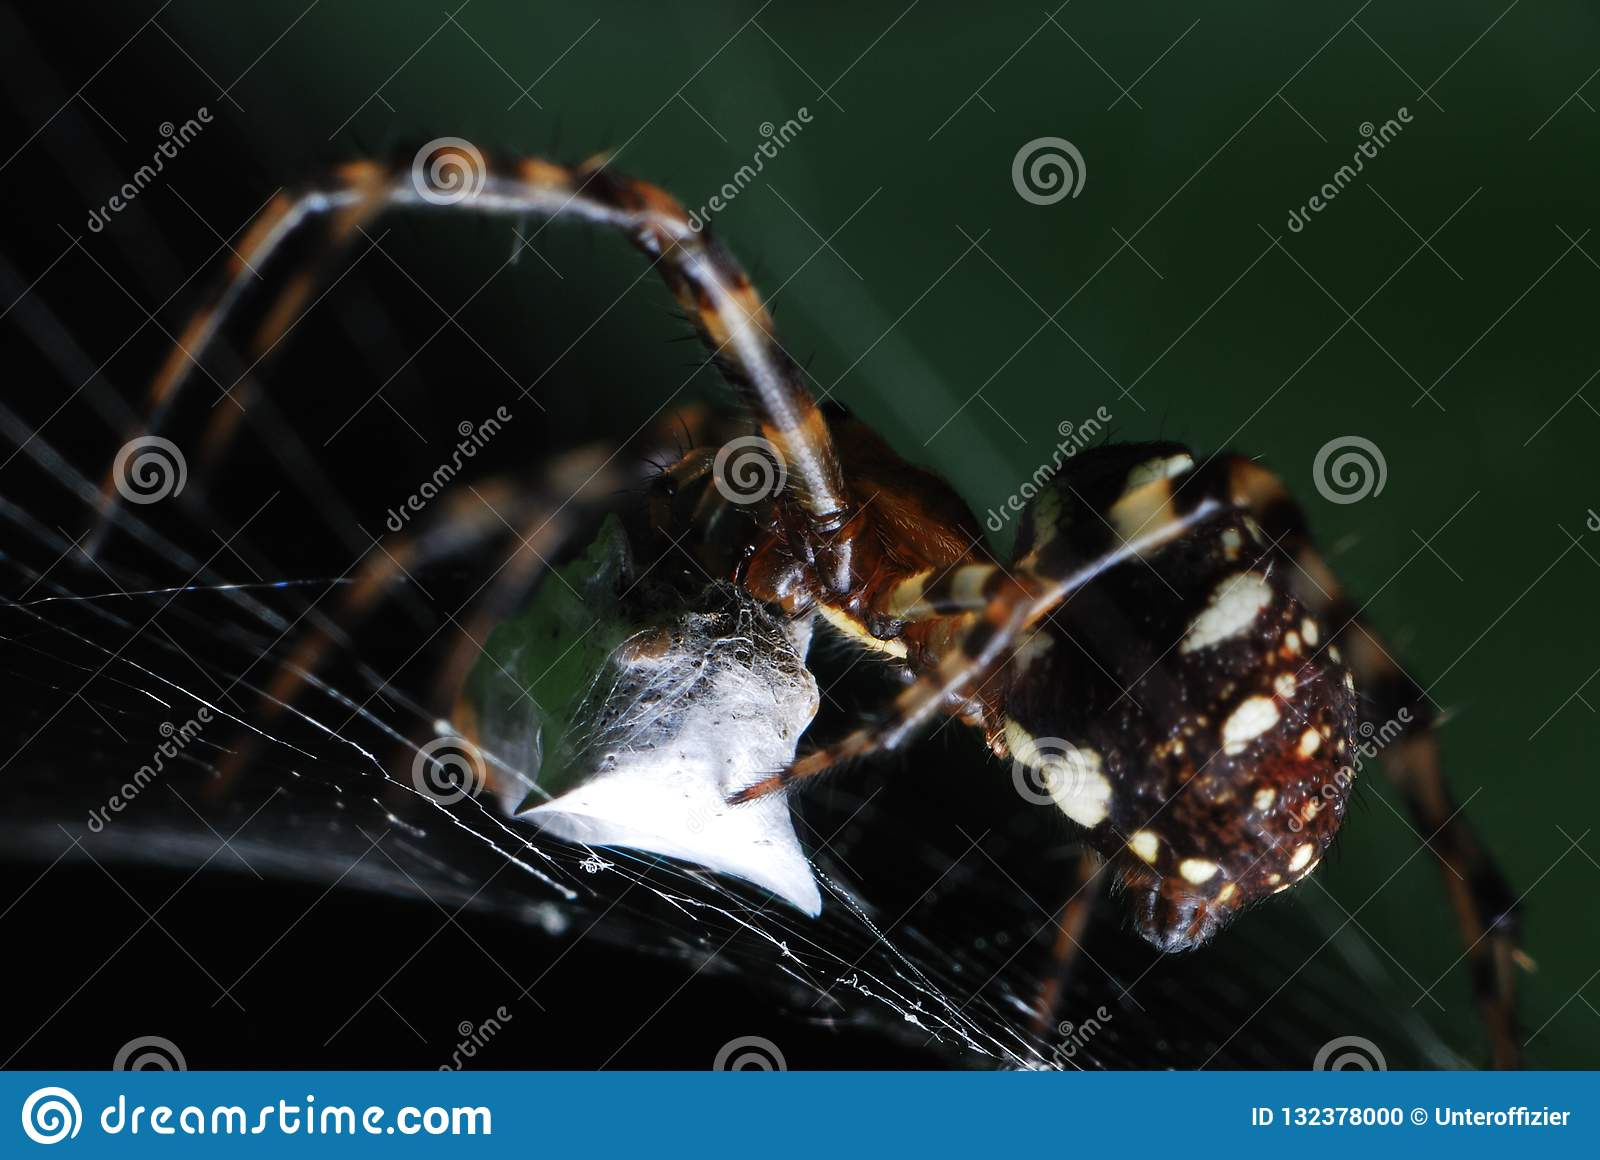 A spider weaving a cocoon over some captured prey